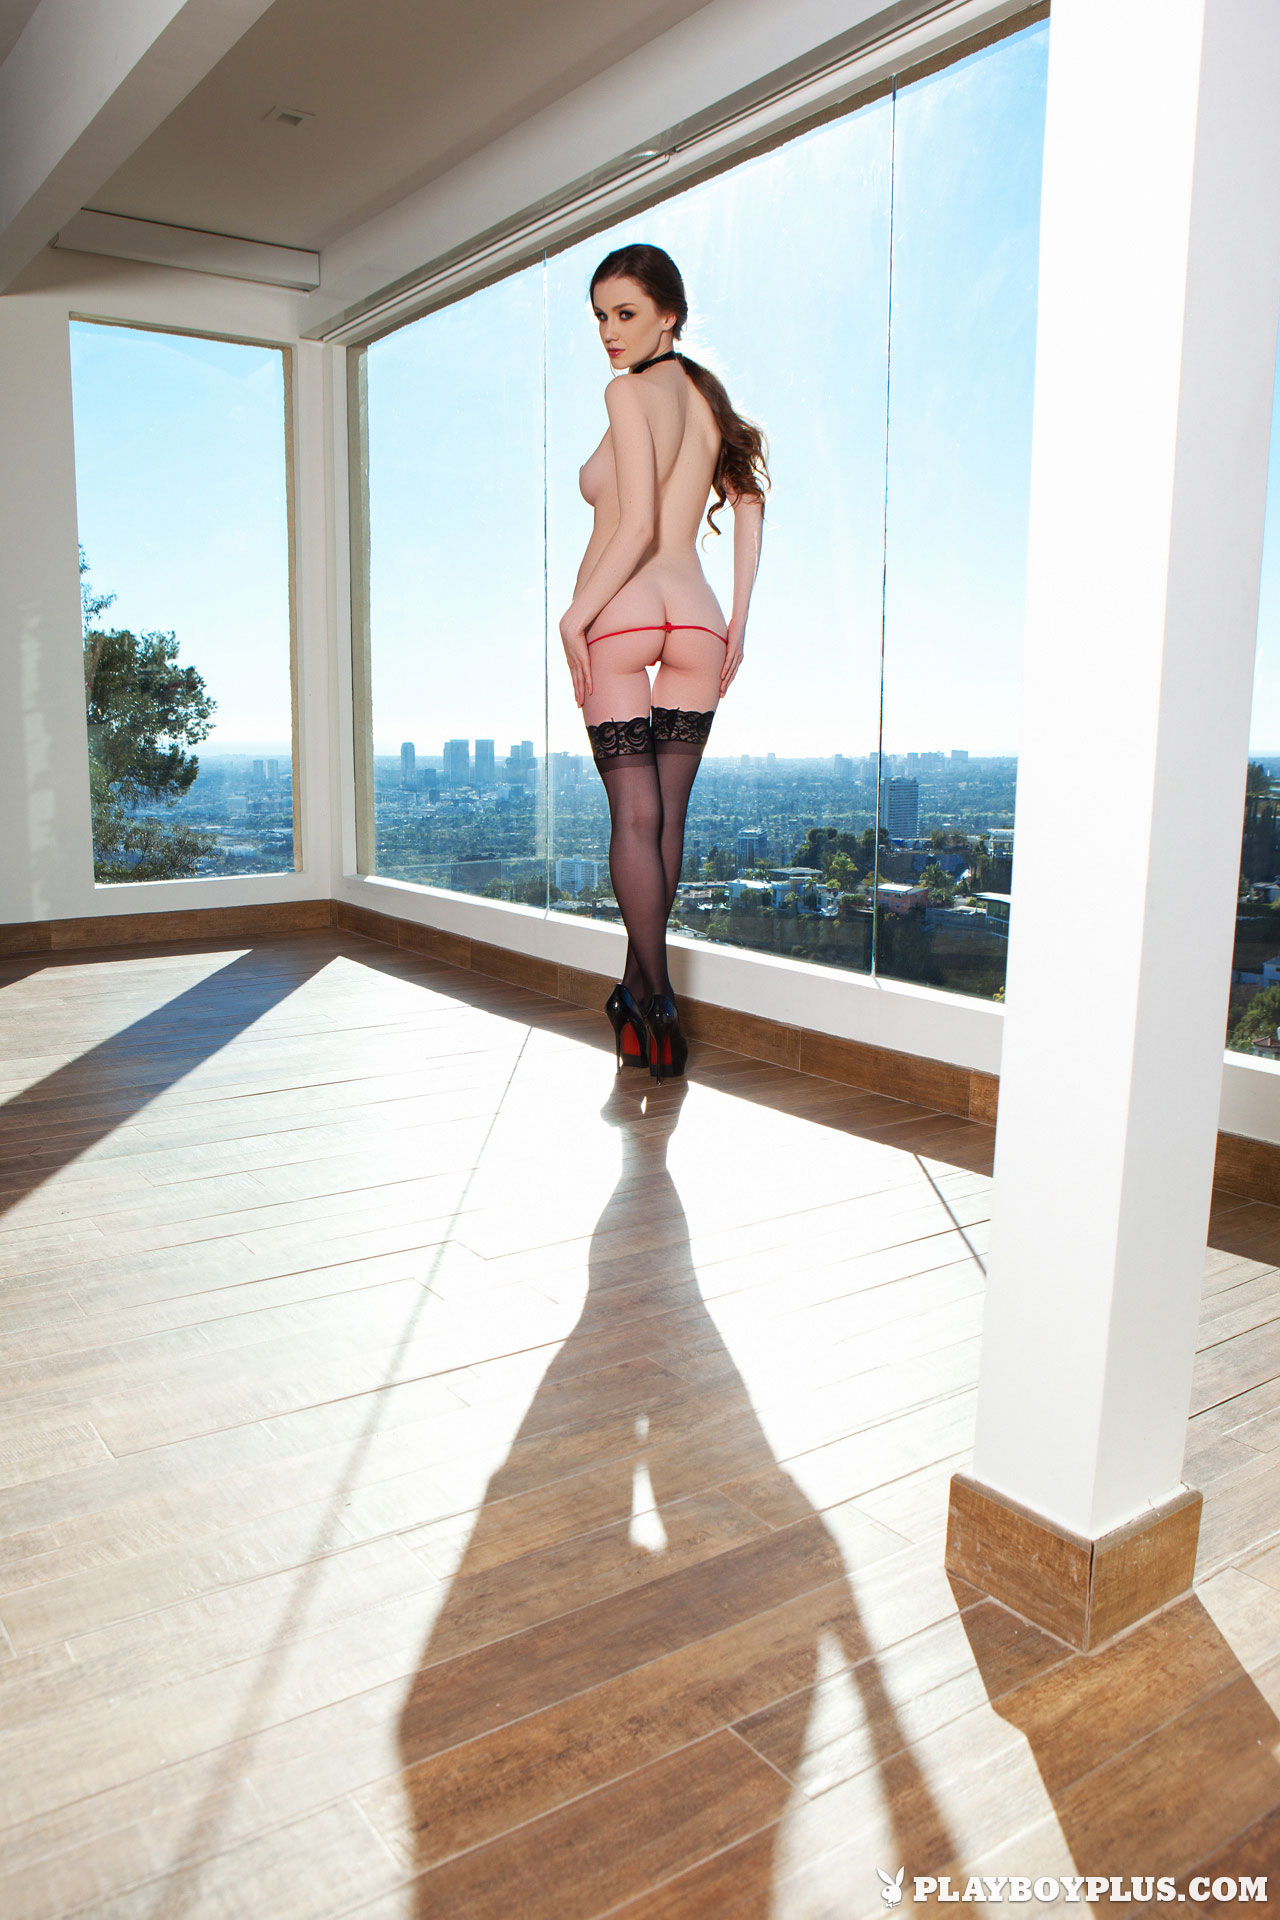 emily-bloom-sunny-apartment-stockings-playboy-10